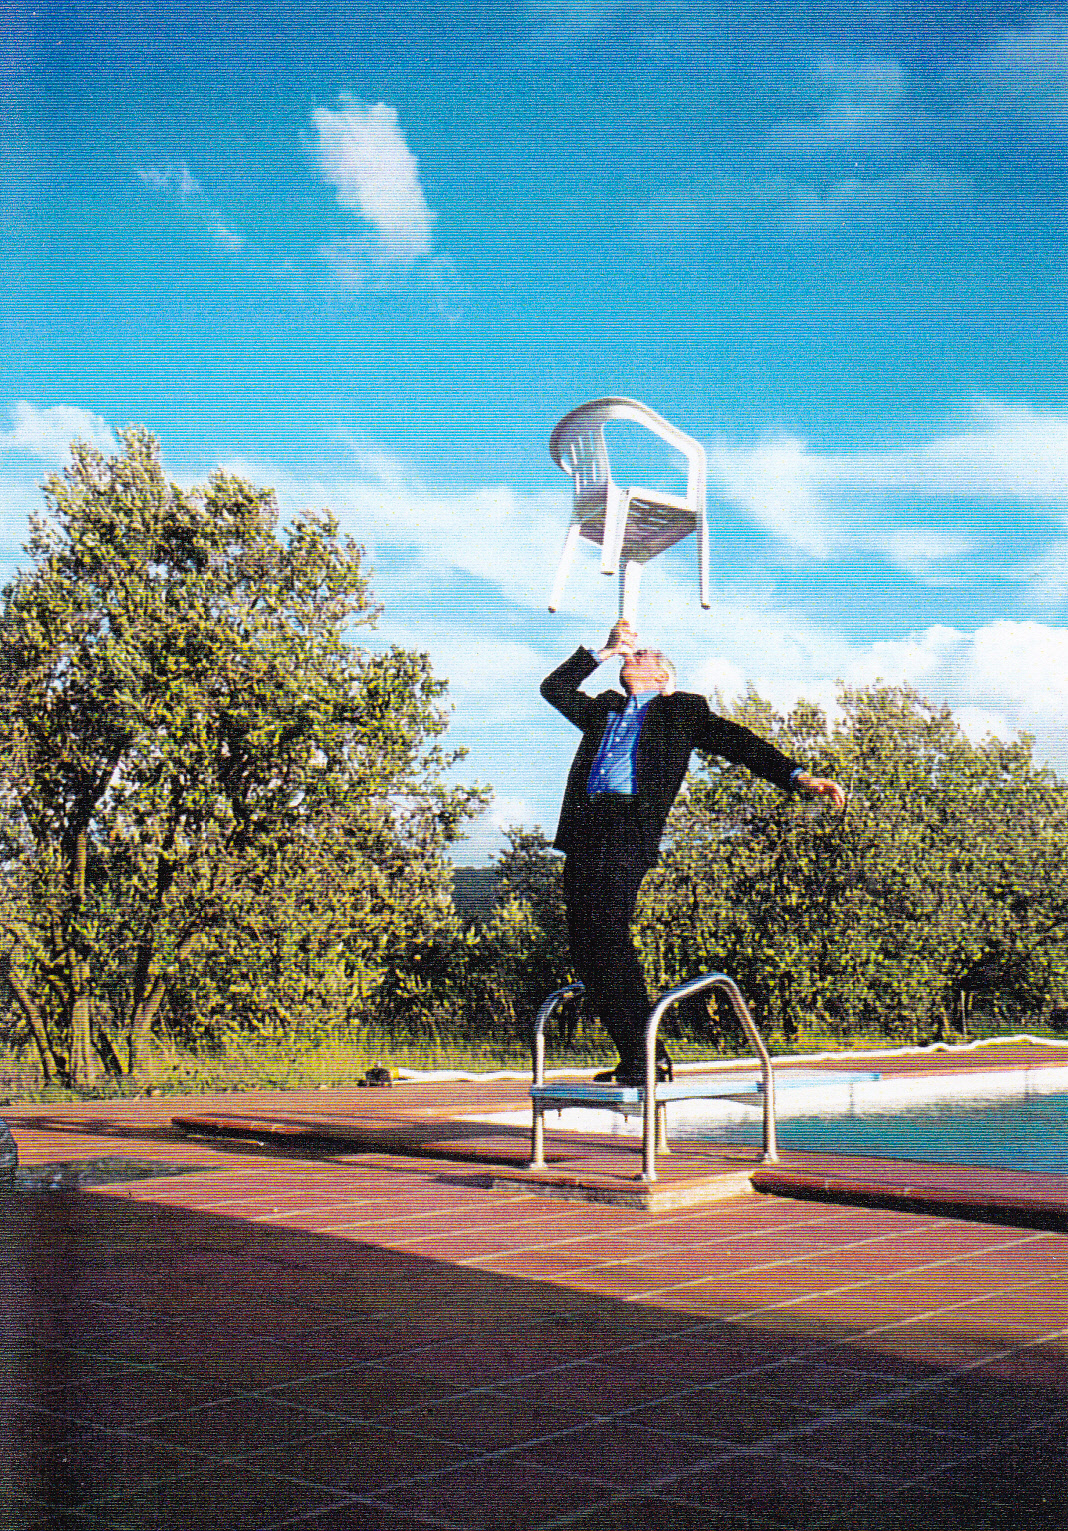 ROBERTO DOING BALANCING ACT AT VILLA LA FORRA POOL